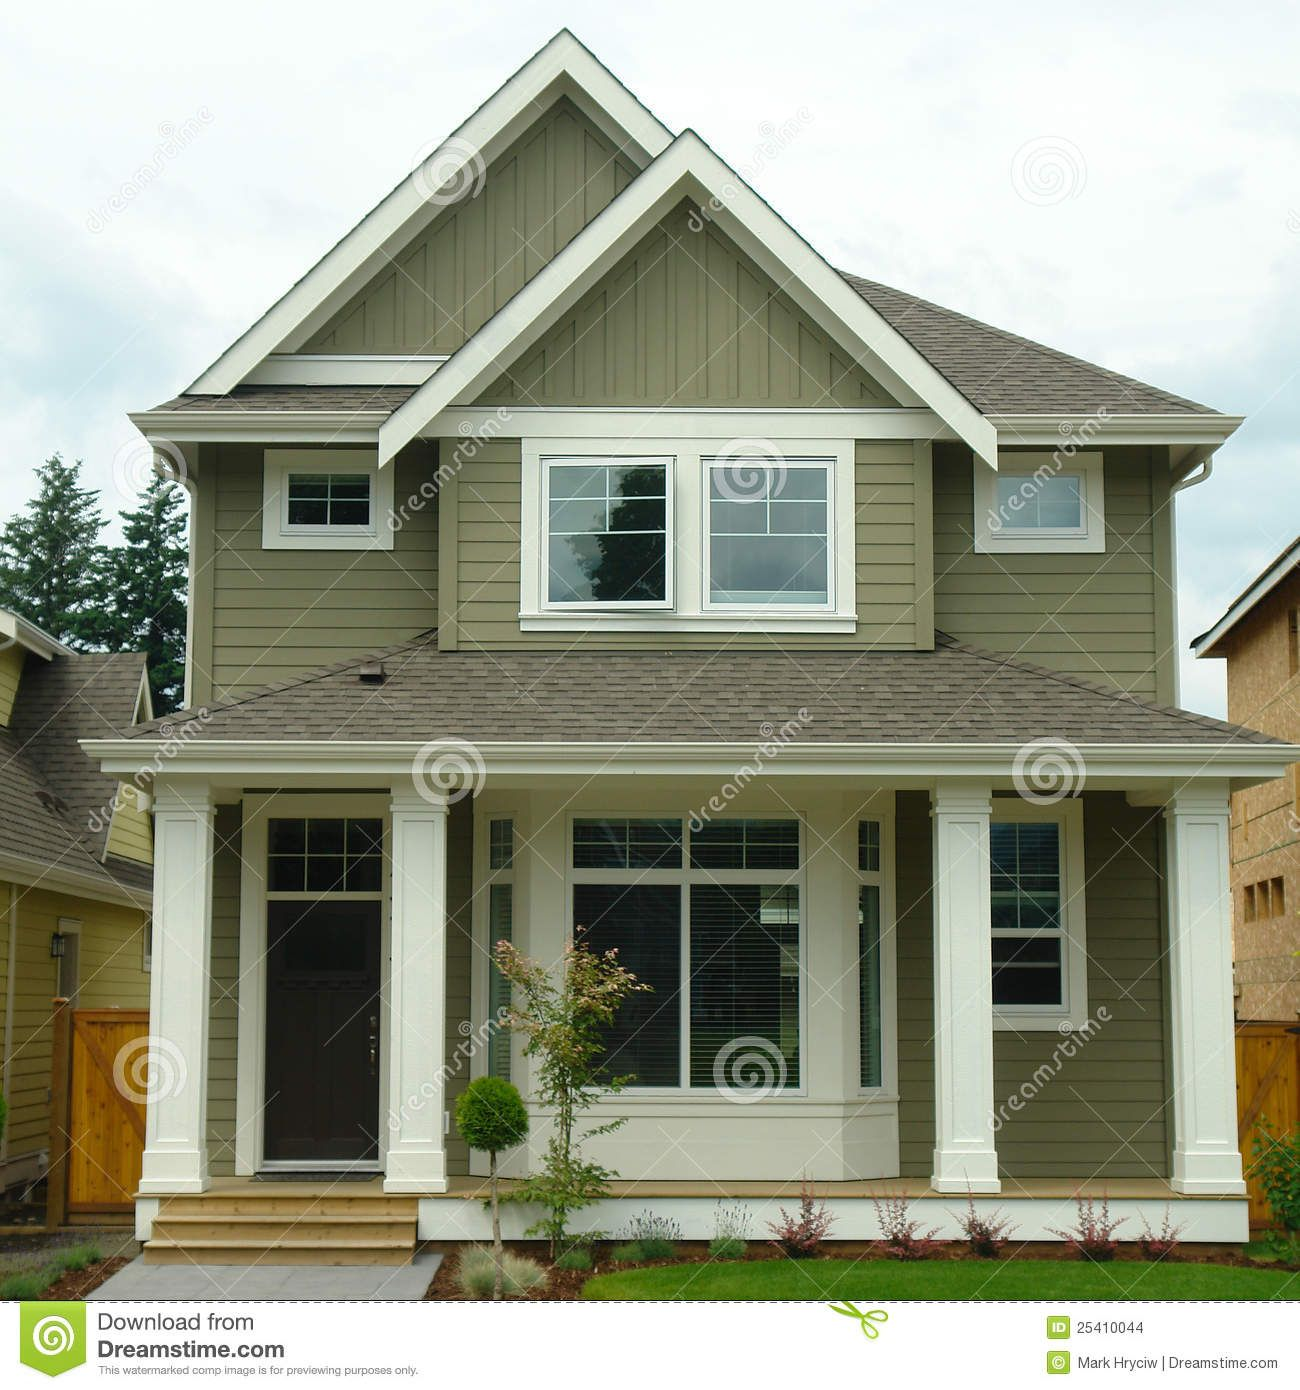 Forest green exterior house color new home house exterior green exterior house - Home exterior paints concept ...